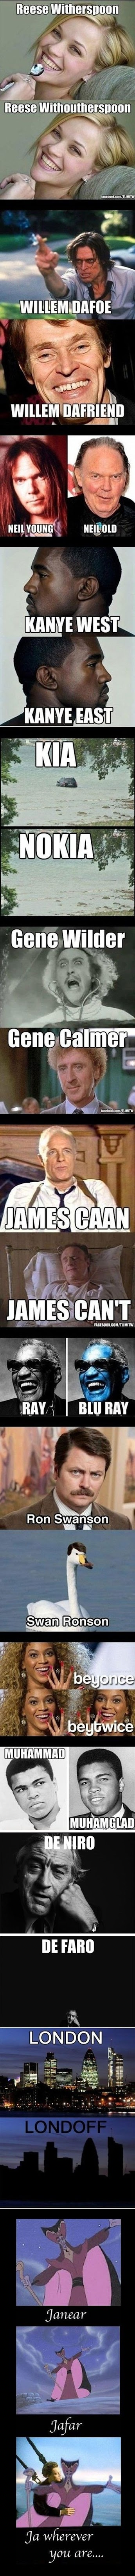 Funny celebrity pun photo strip pictures